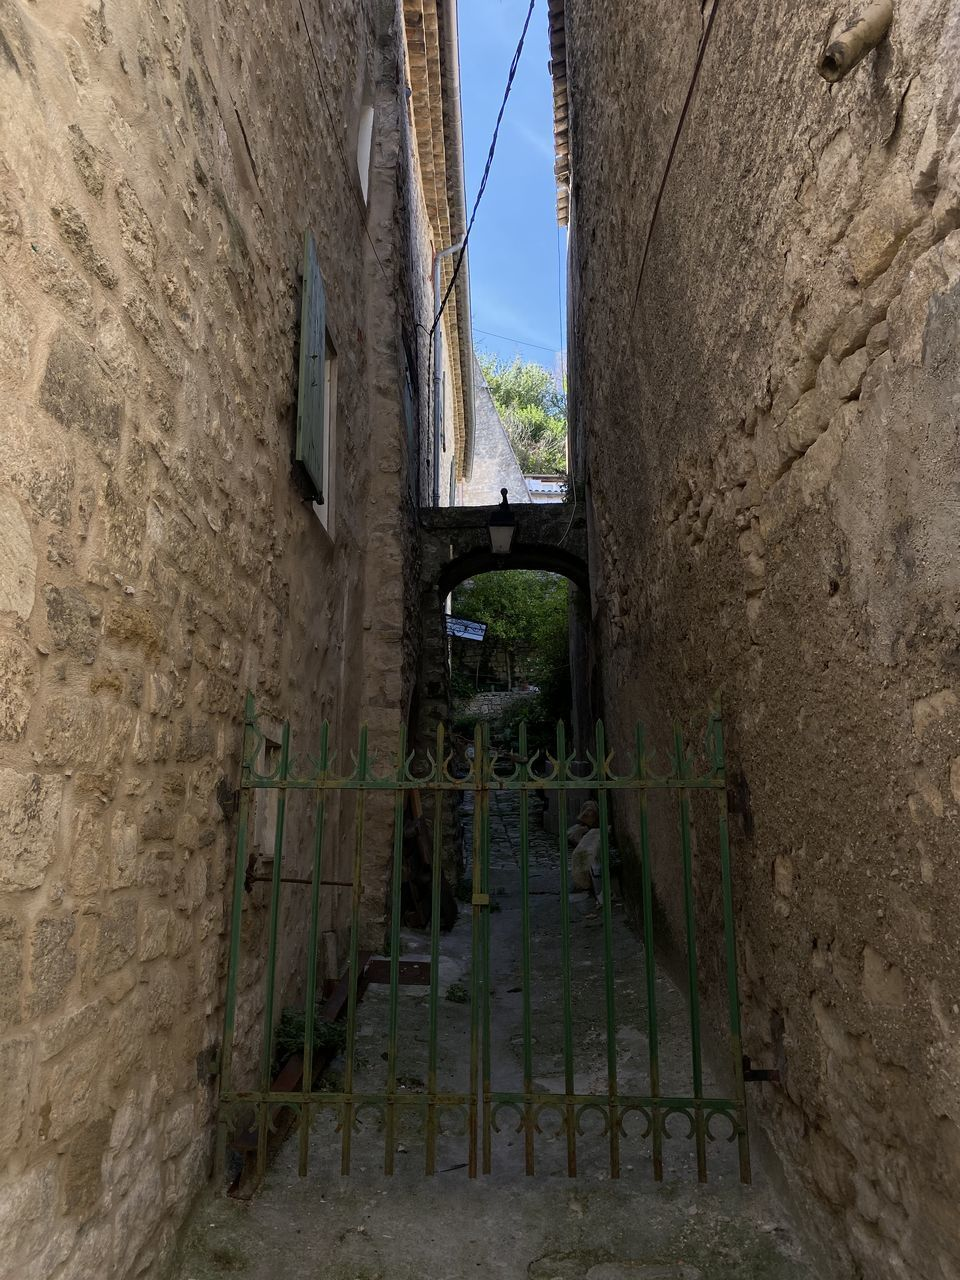 architecture, built structure, no people, building exterior, building, wall - building feature, day, wall, window, outdoors, old, nature, sky, history, solid, entrance, the past, stone material, prison, punishment, stone wall, alley